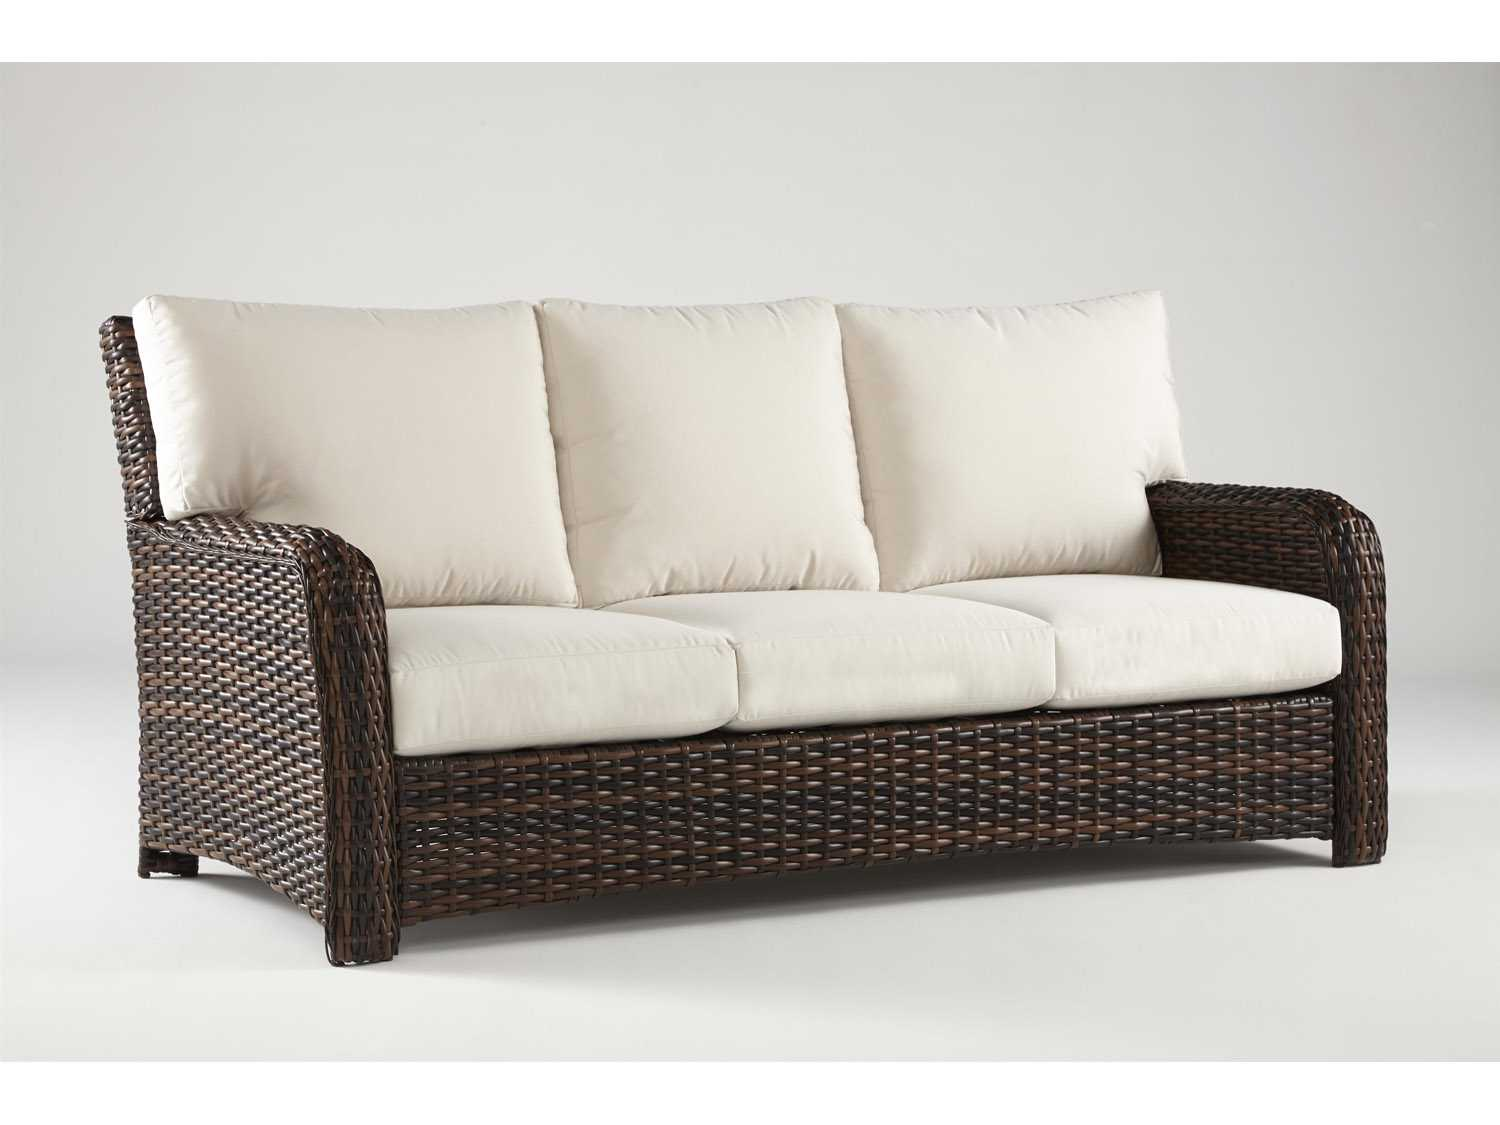 conversational sofa cover baby with name south sea rattan patio done quick st tropez wicker cushion